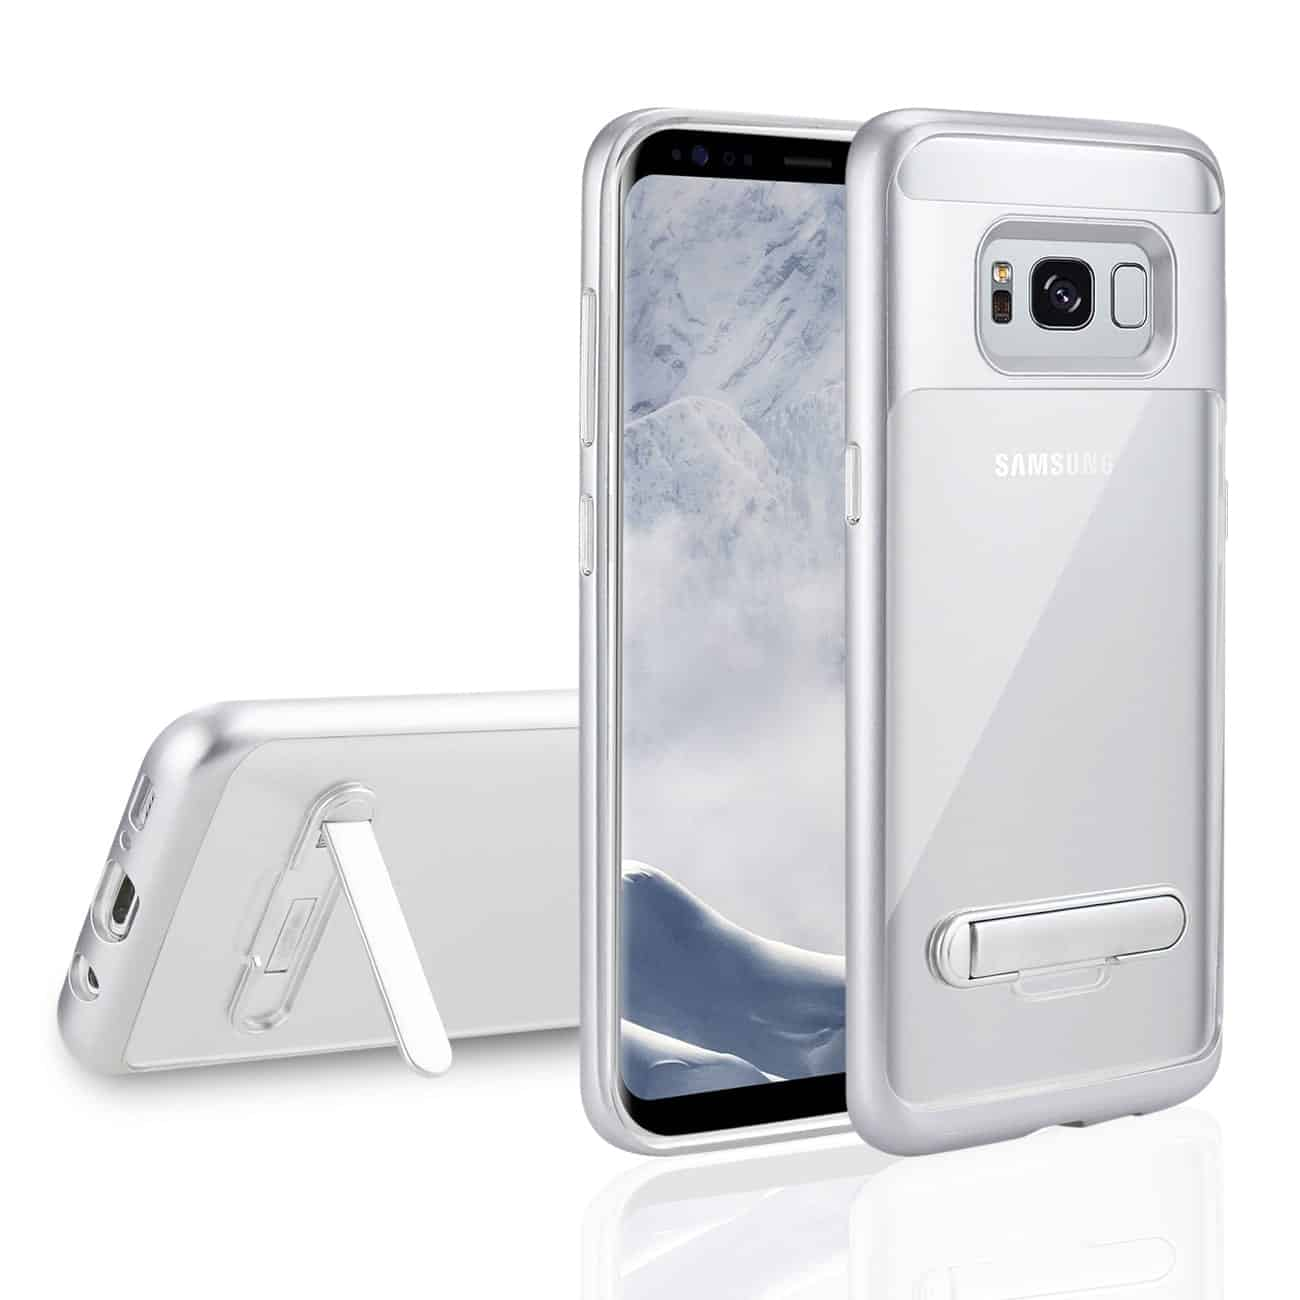 SAMSUNG GALAXY S8 EDGE/ S8 PLUS TRANSPARENT BUMPER CASE WITH KICKSTAND AND MATTE INNER FINISH IN CLEAR SILVER